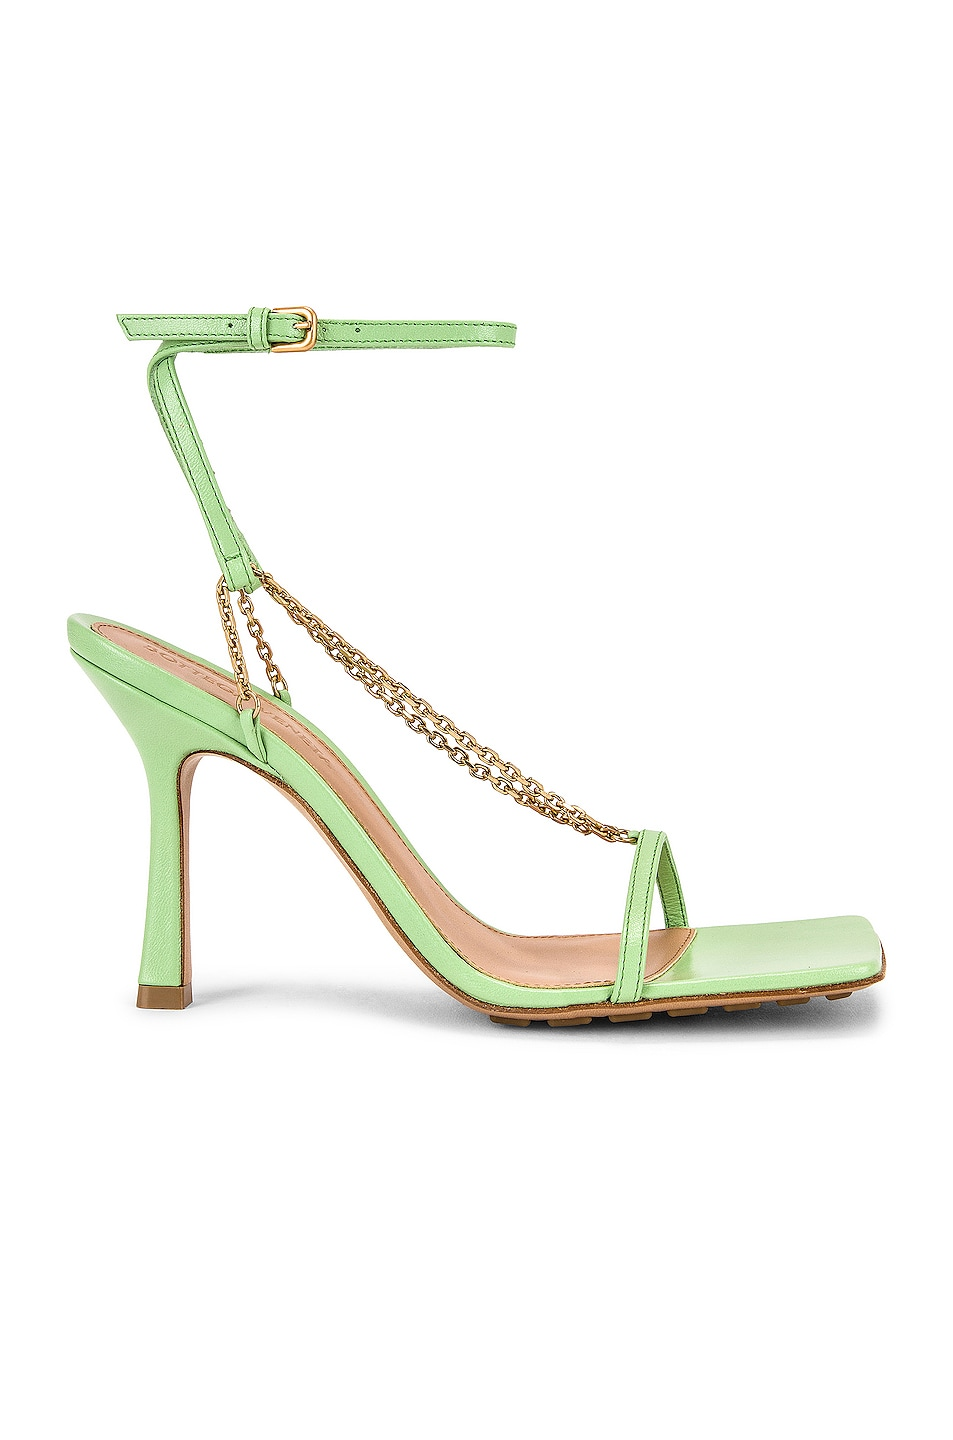 Image 1 of Bottega Veneta Stretch Chain Sandals in Pistachio